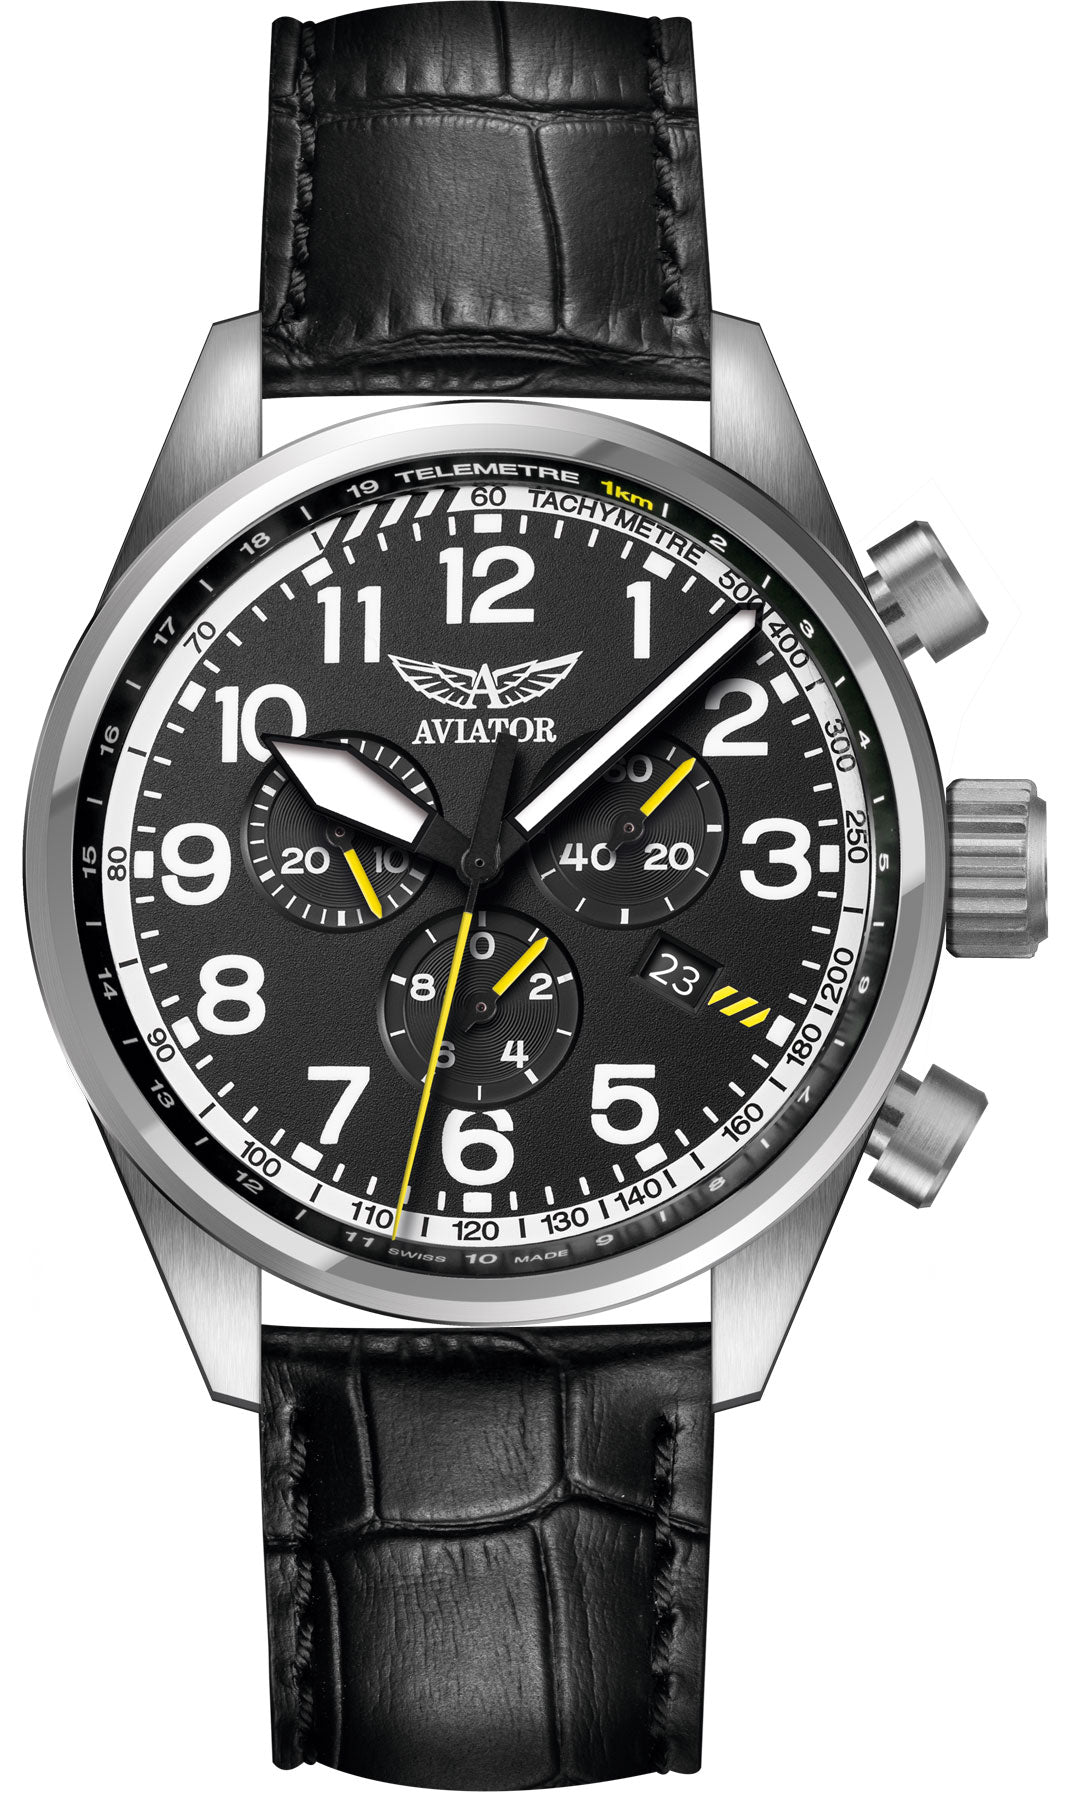 dfdf products download watches aviation luxury pilot shop aviator